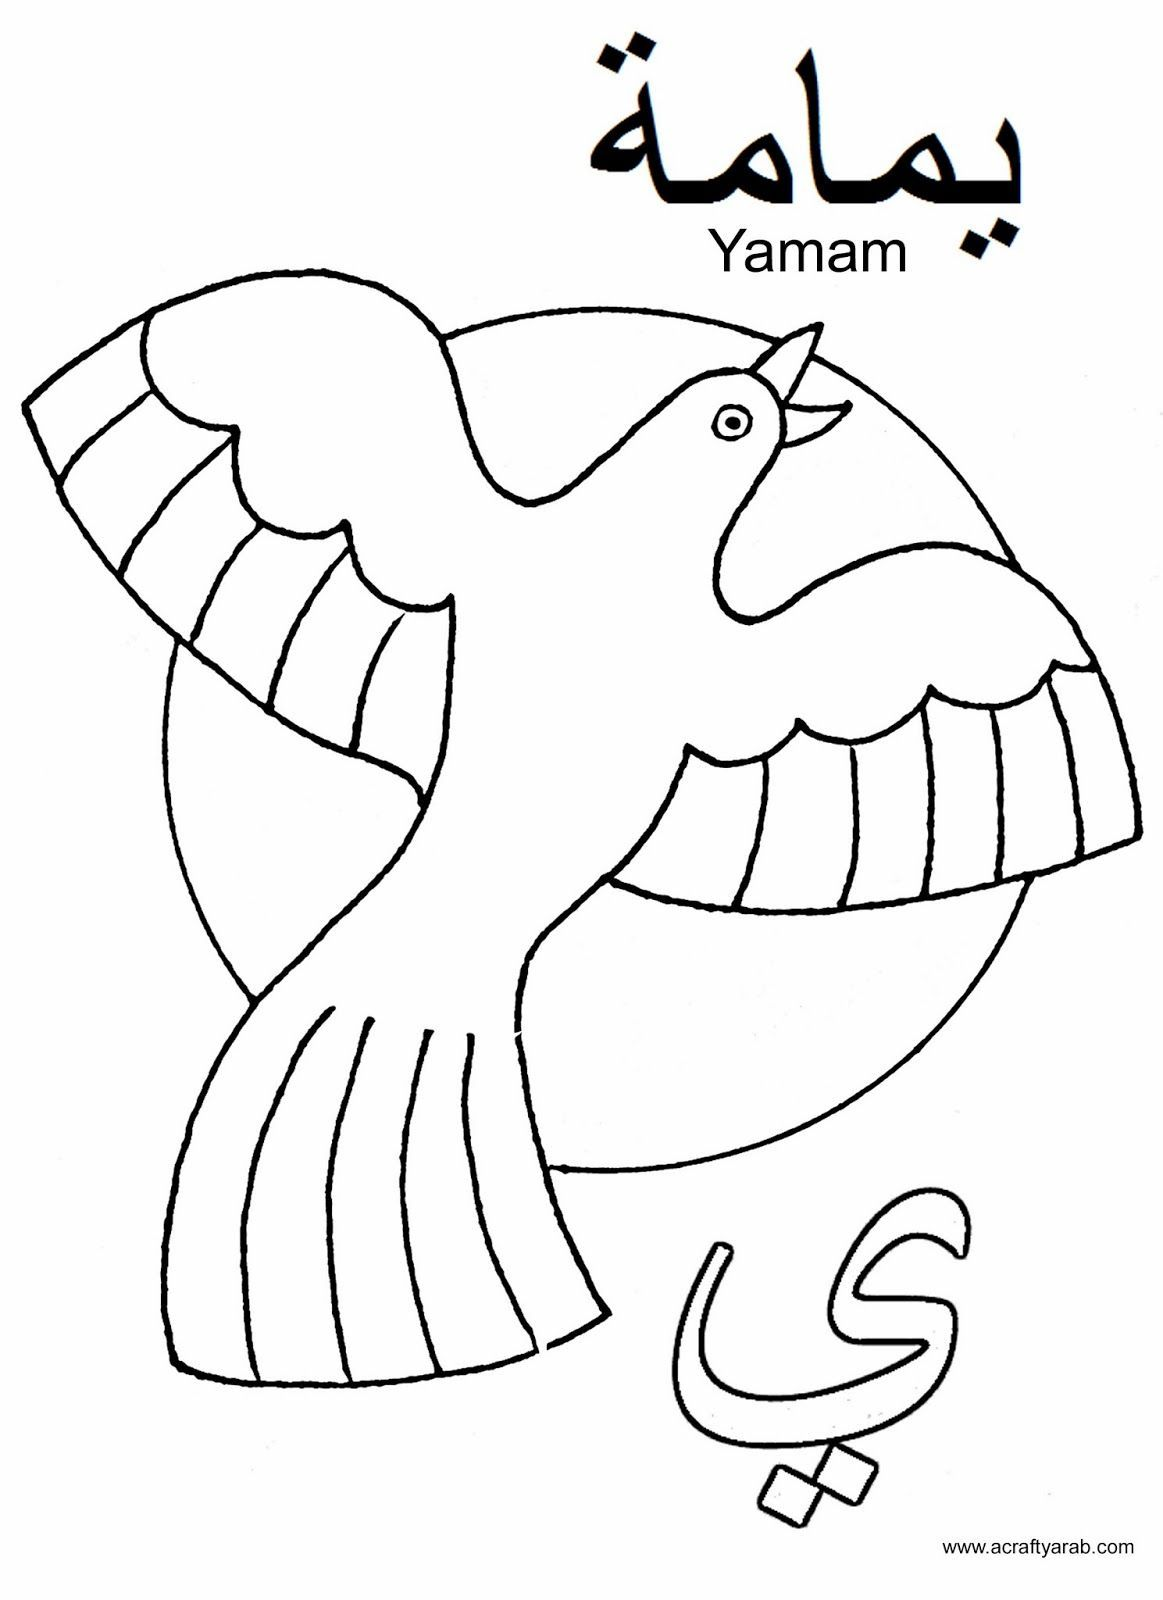 A Crafty Arab Arabic Alphabet Coloring Pages Ya Is For